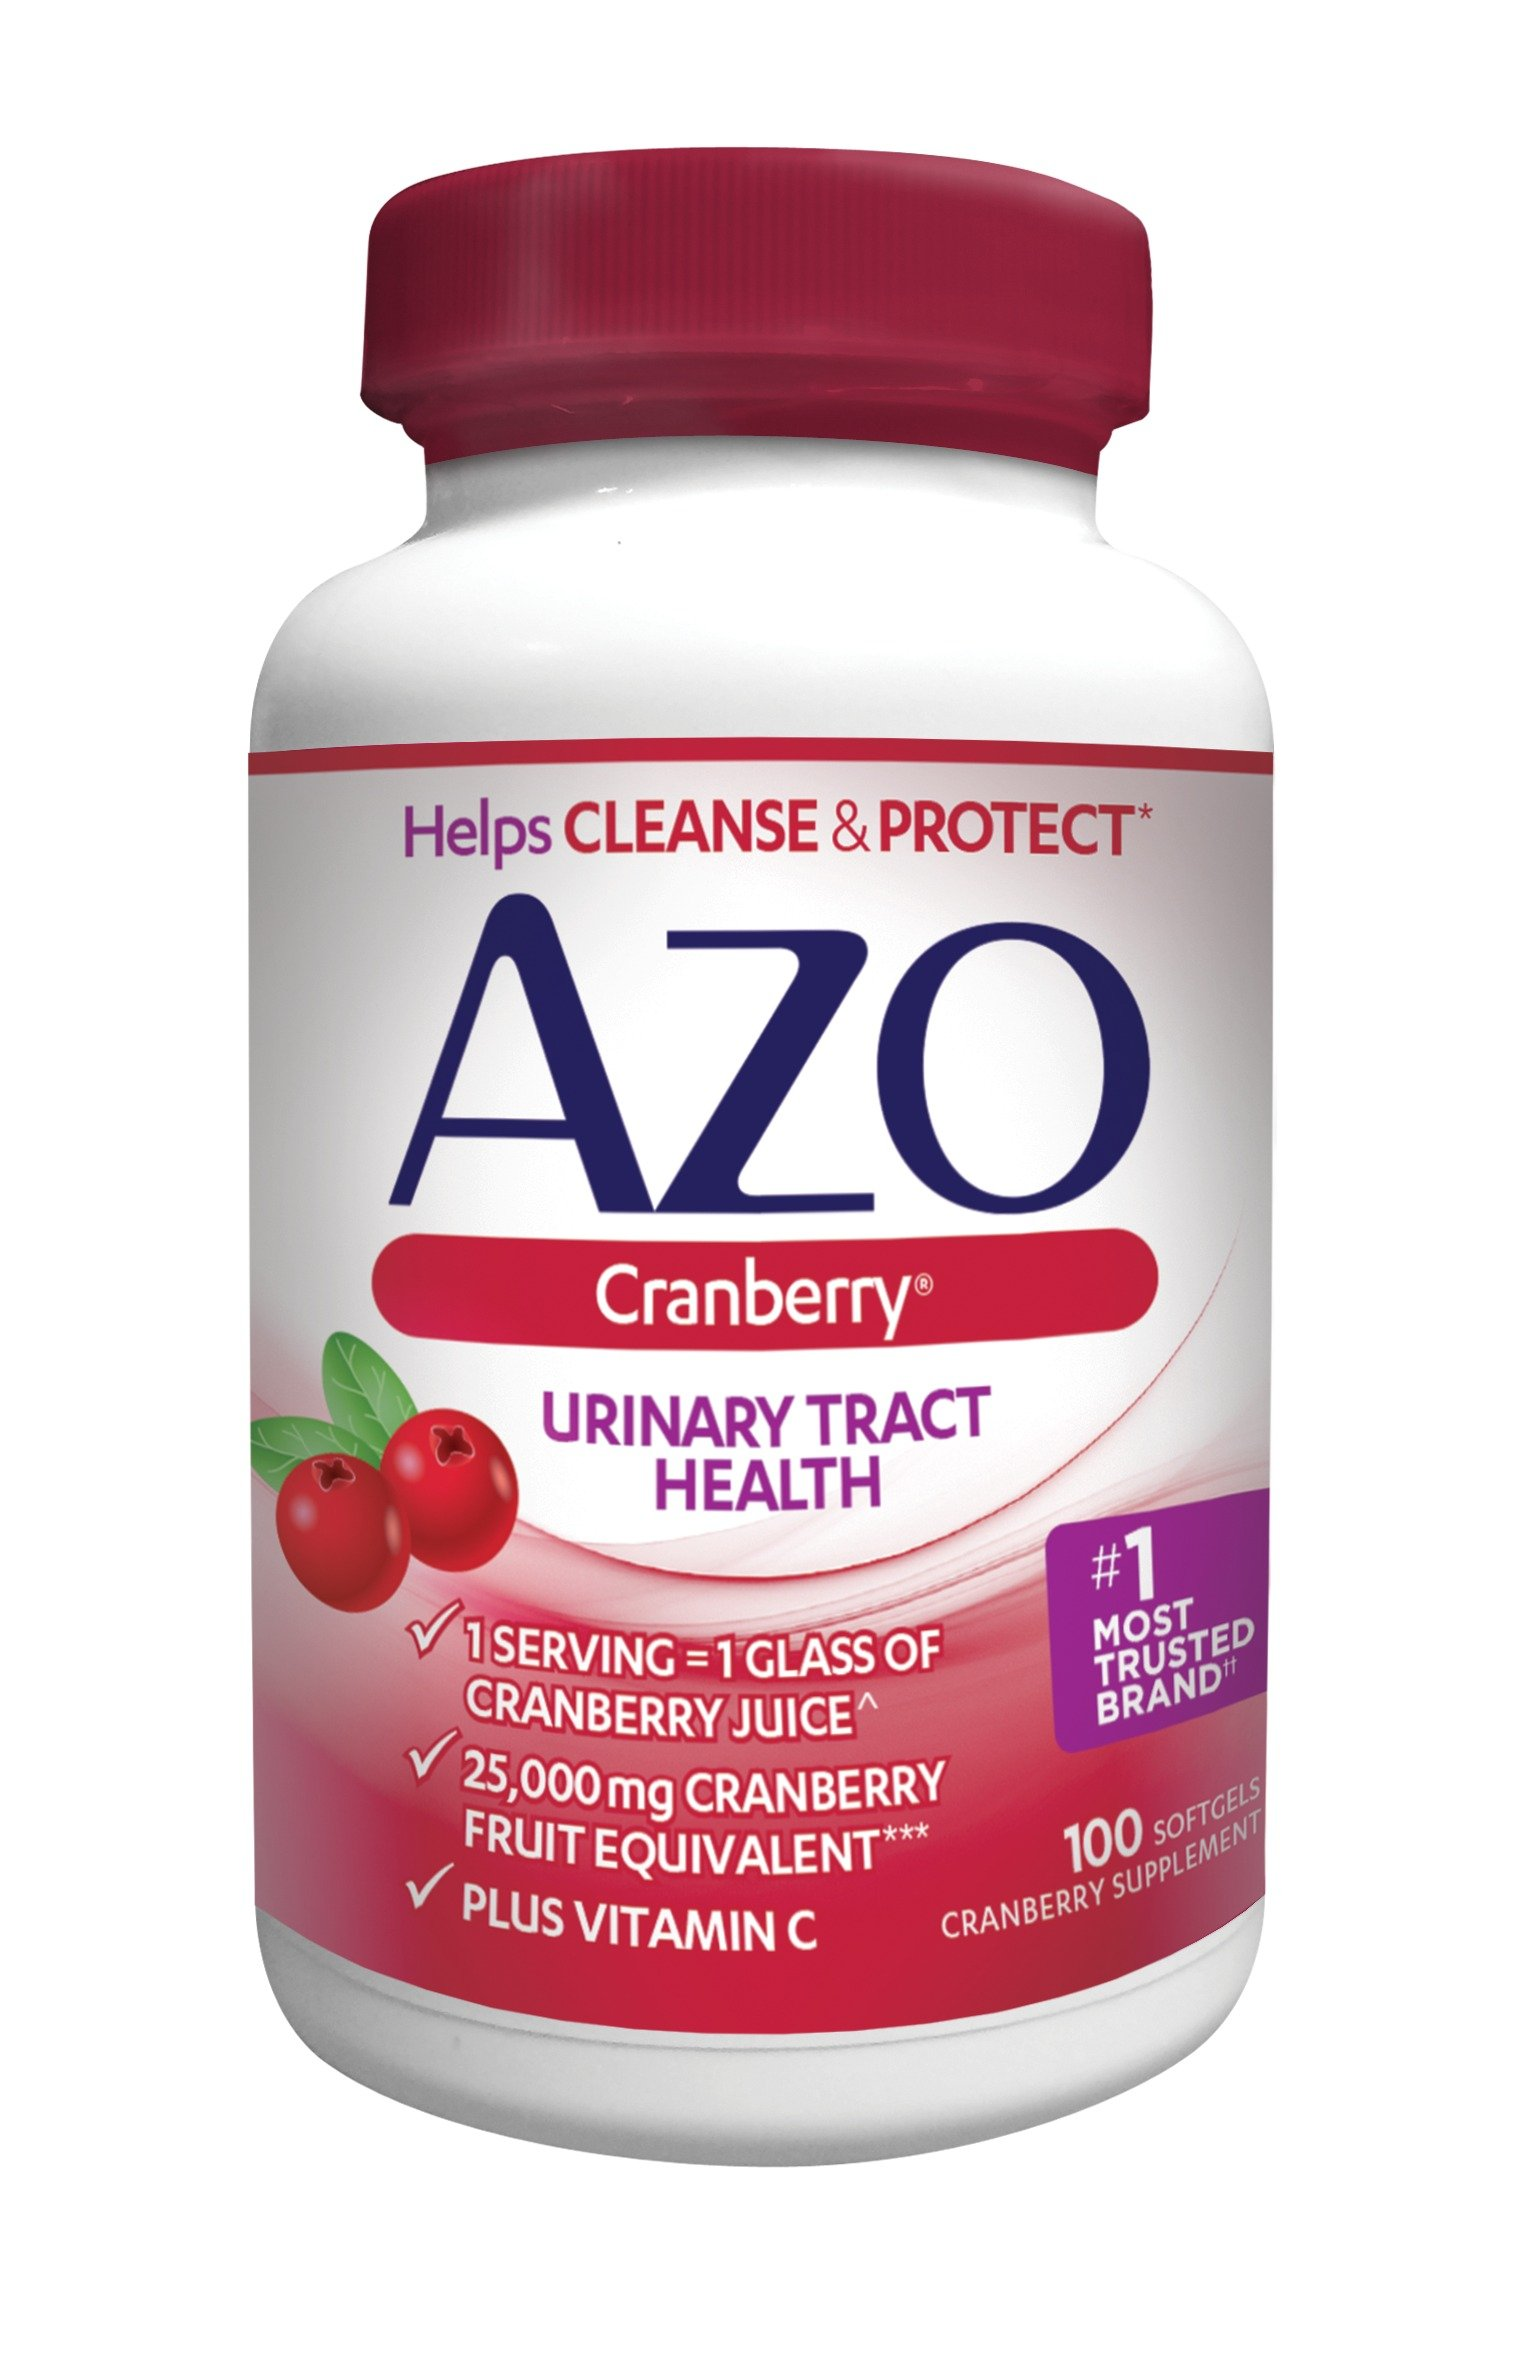 AZO Cranberry Urinary Tract Health Dietary Supplement* – 1 Serving = 1 Glass of Cranberry Juice^ - Helps Maintain Urinary Tract Cleanliness* –Plus Vitamin C - 100 Softgels